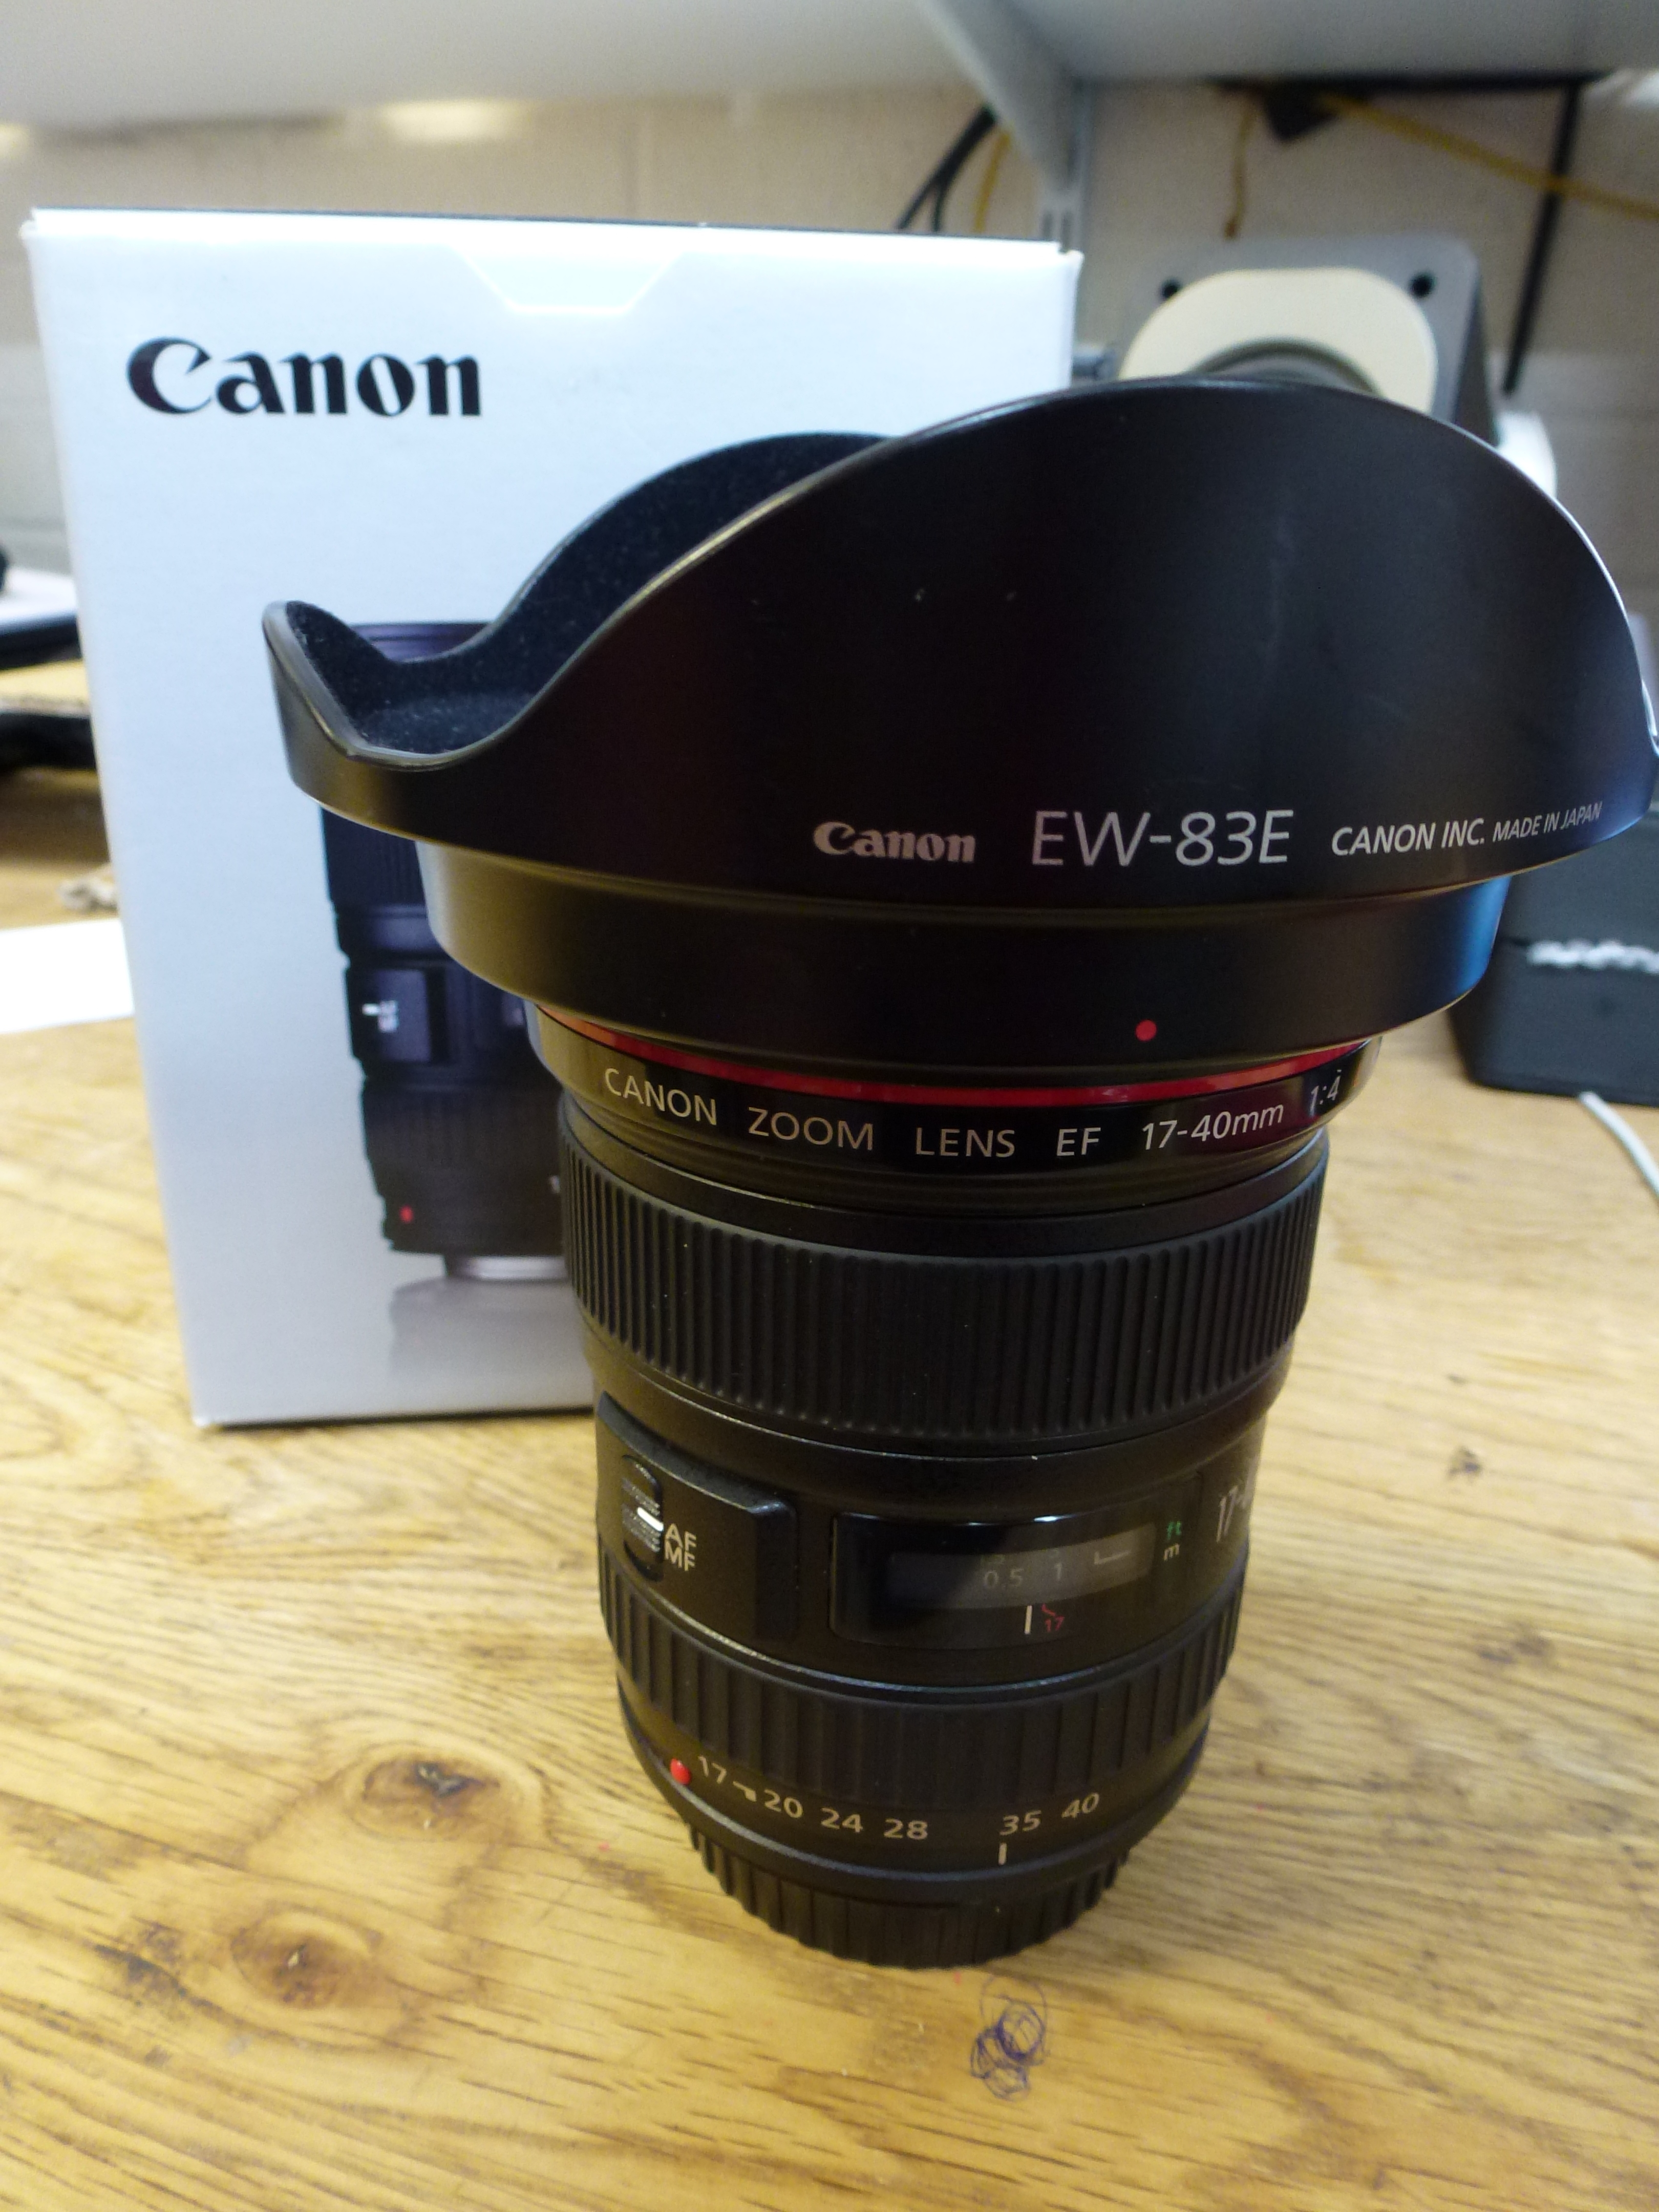 Canon EF 17-40mm F/4.0 L USM Ultra Wide Angle Zoom Lens with Lens Hood